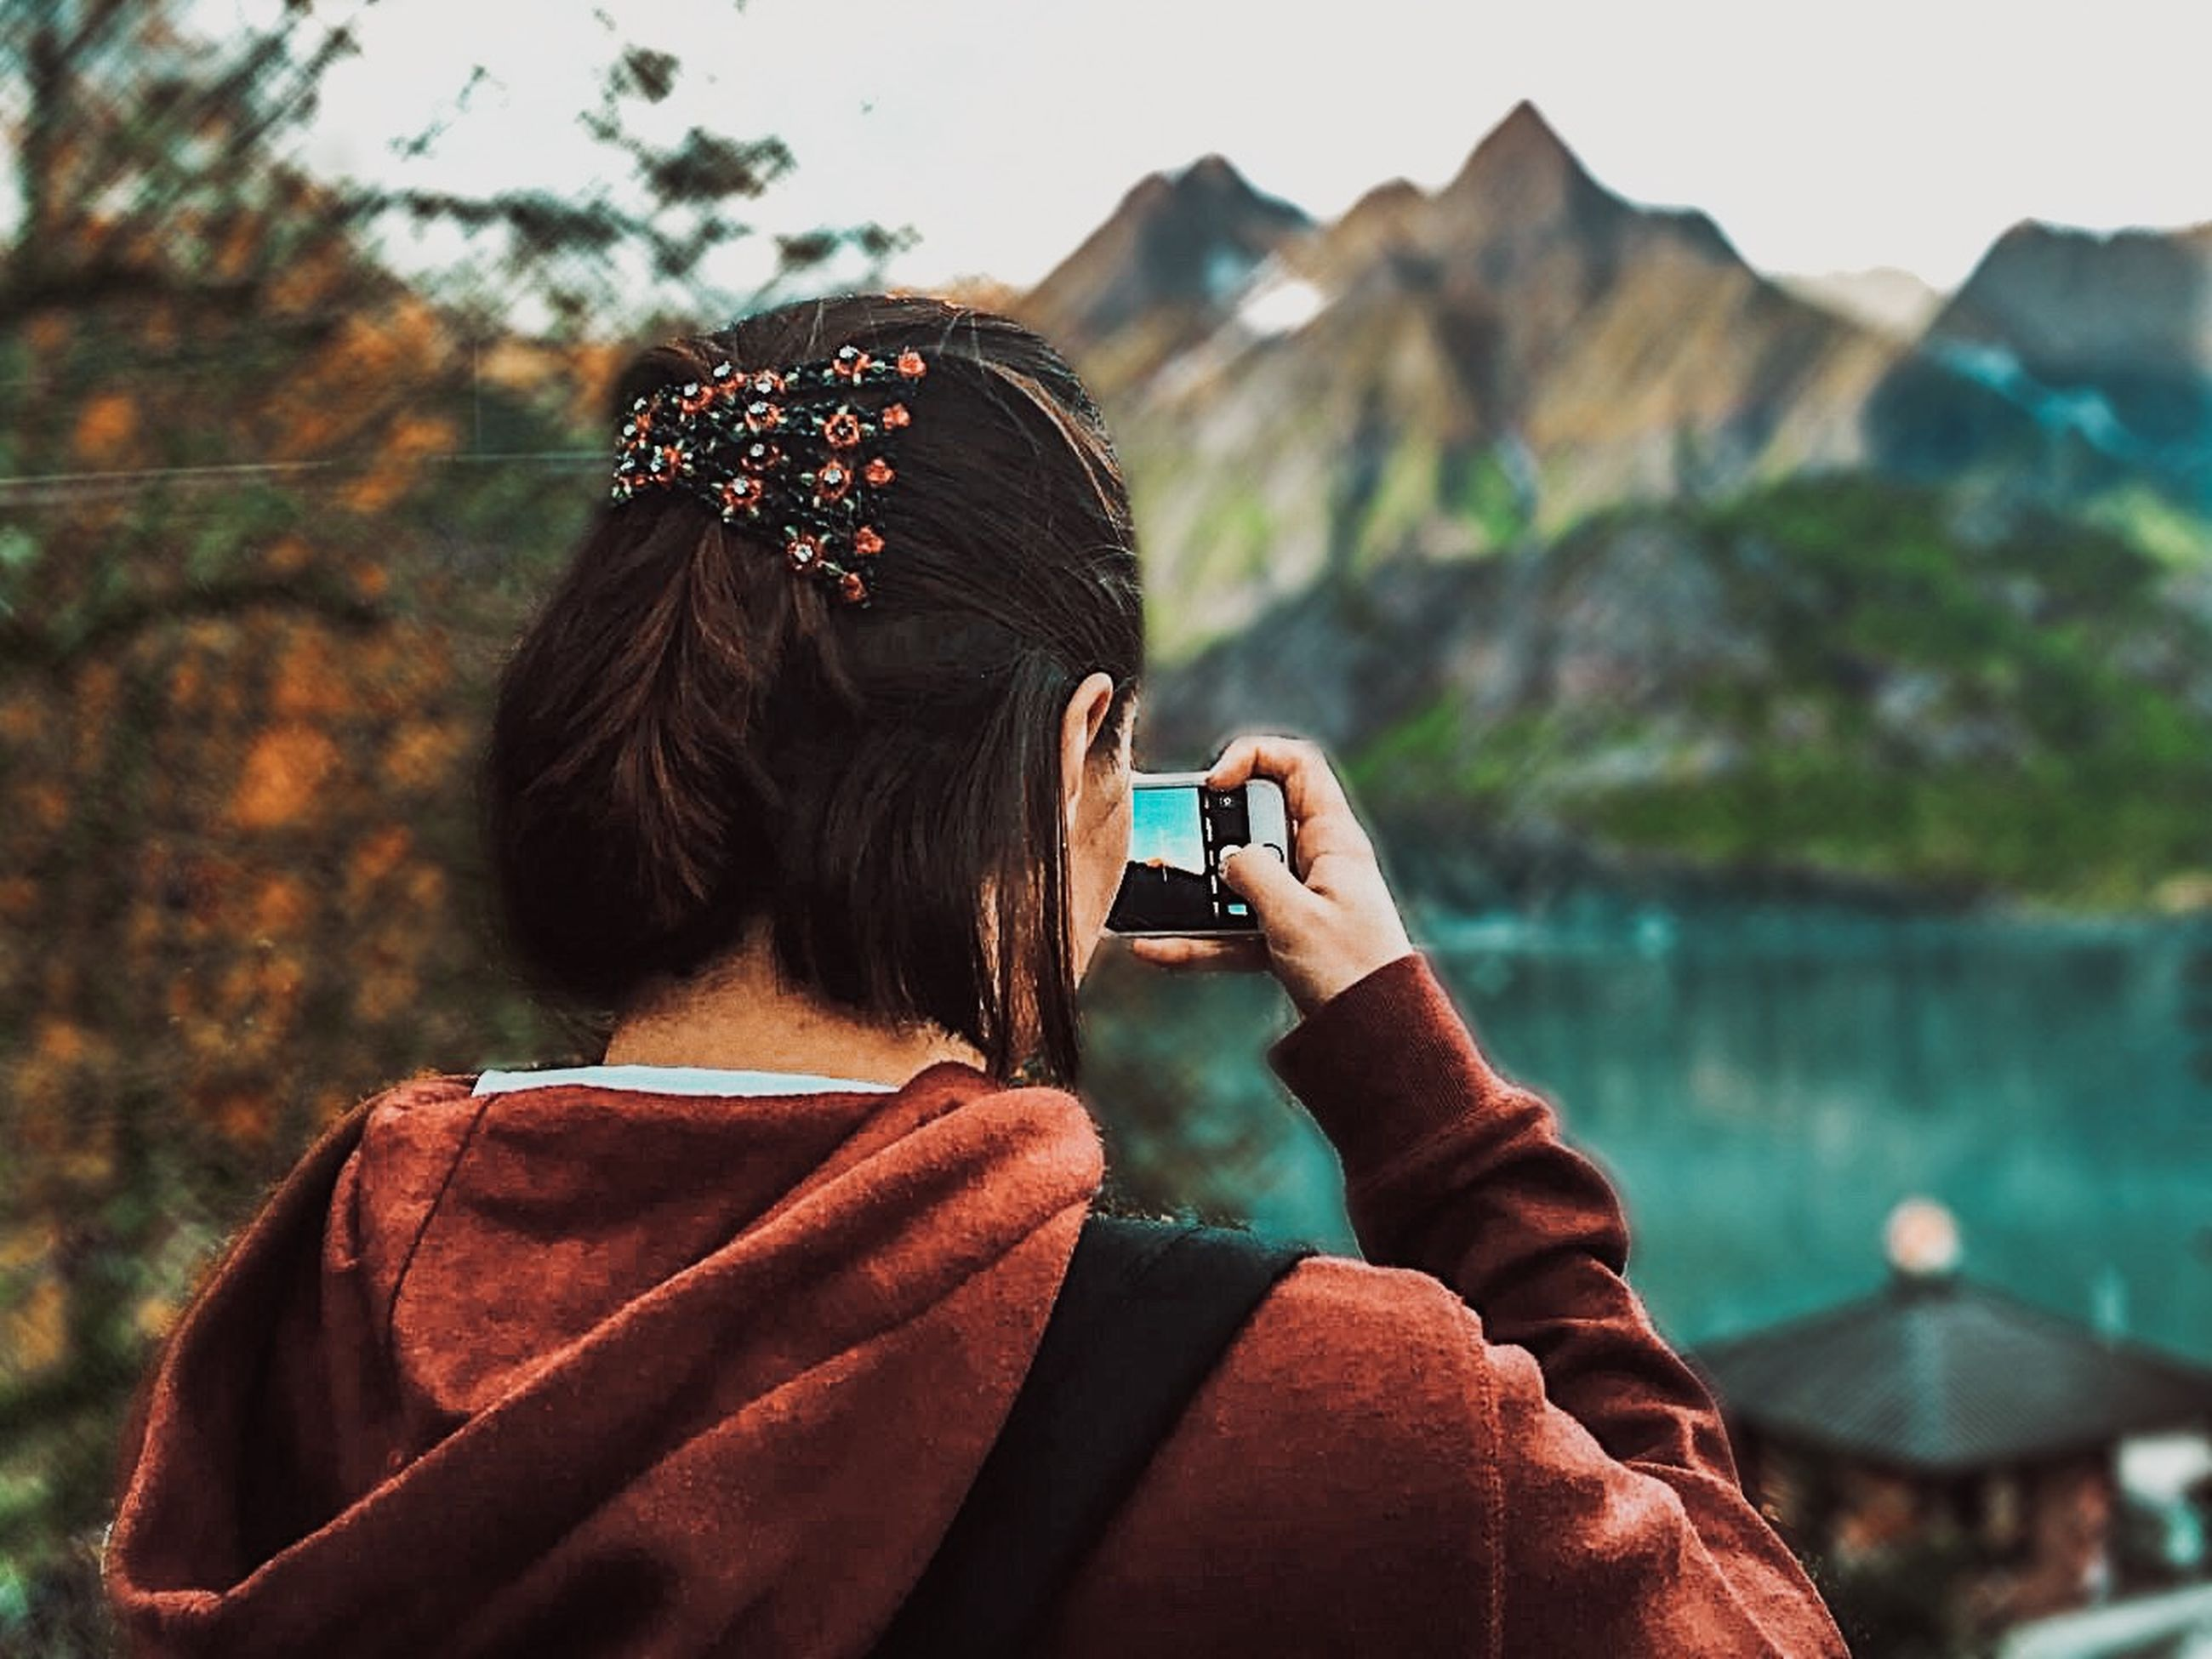 real people, activity, one person, lifestyles, leisure activity, photography themes, photographing, technology, rear view, wireless technology, headshot, holding, smart phone, mobile phone, portrait, water, portable information device, nature, women, outdoors, hairstyle